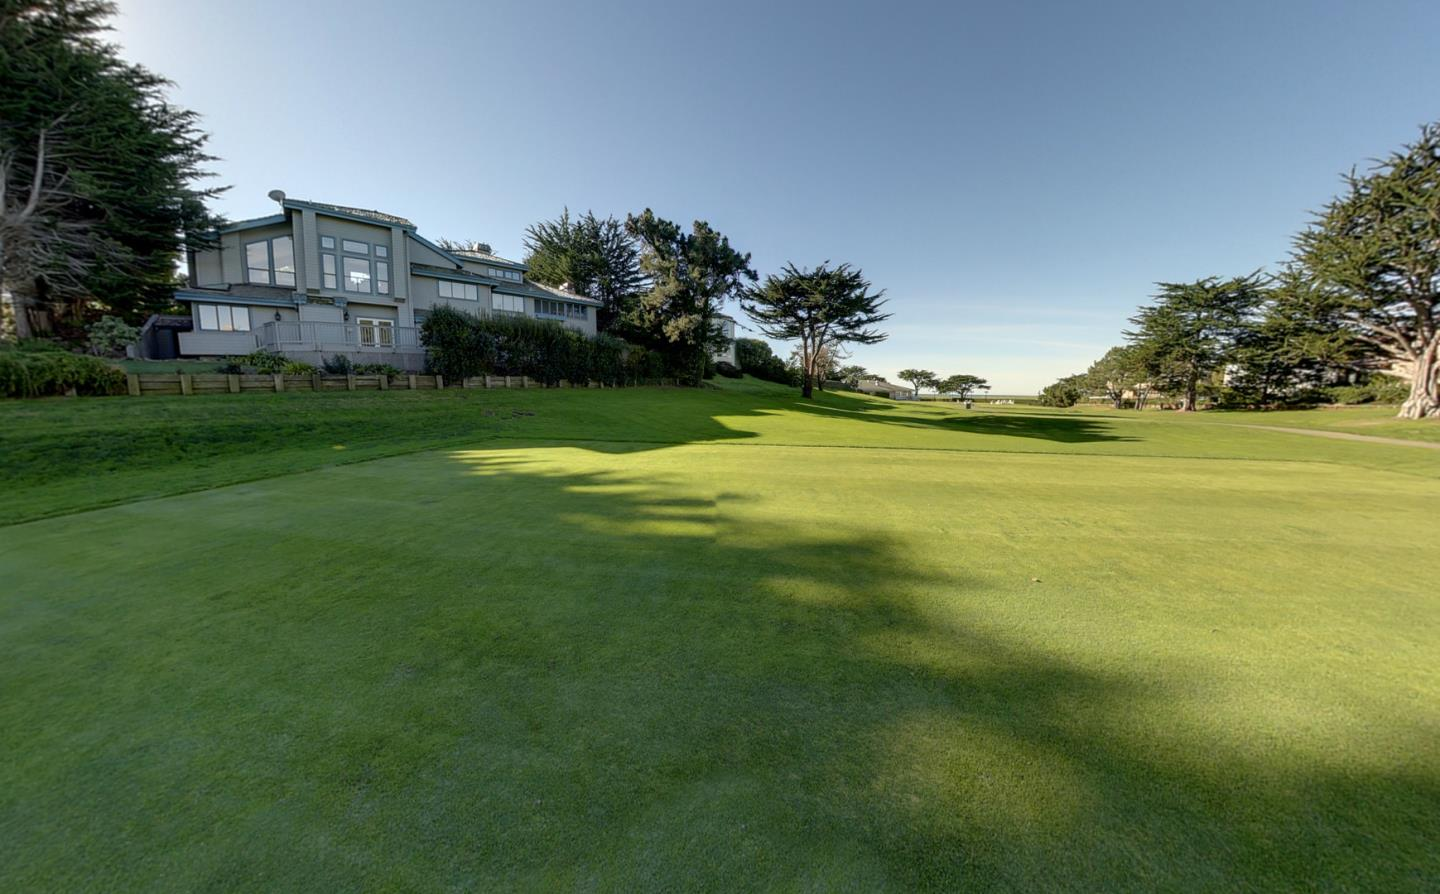 15 Ashdown Place, HALF MOON BAY, CA 94019